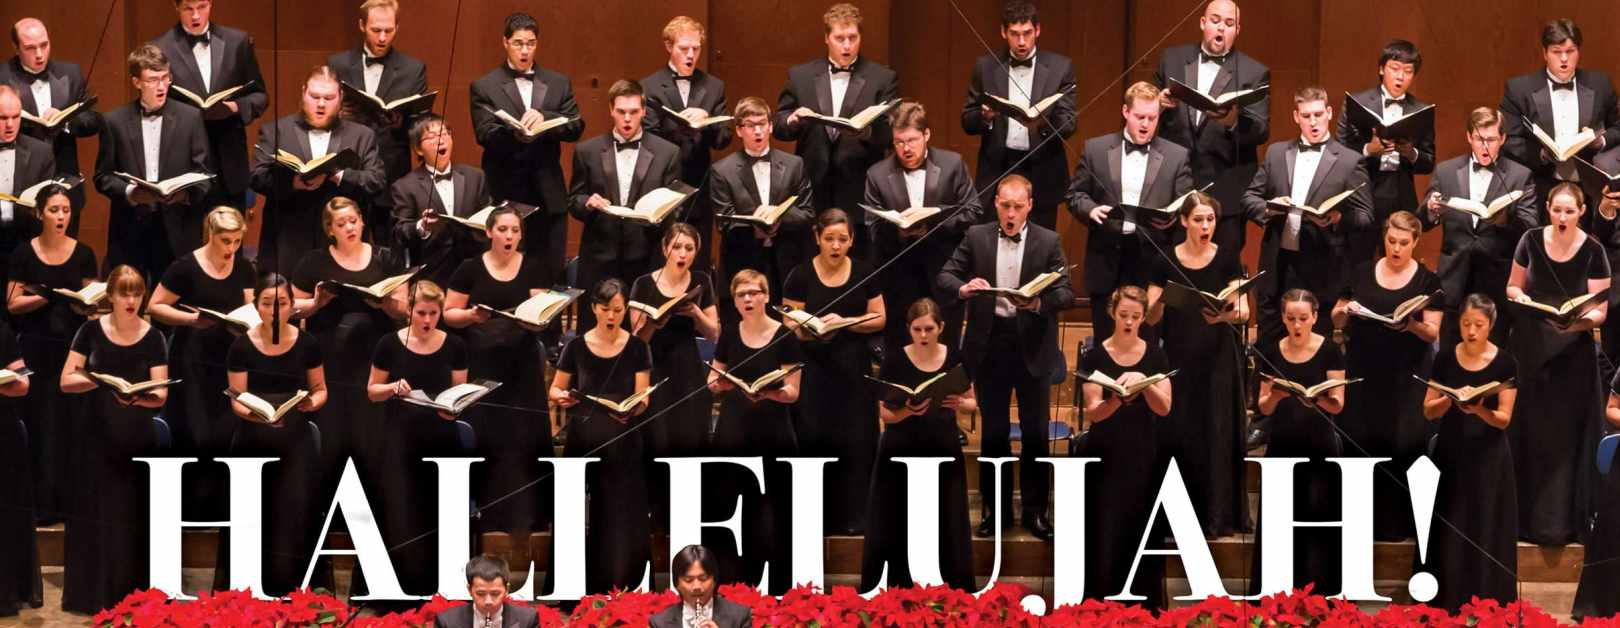 handels messiah A must-see christmas tradition mark the region's best messiah on your calendar  mon december 10th, 7:30pm st patrick's roman catholic church, hamilton.